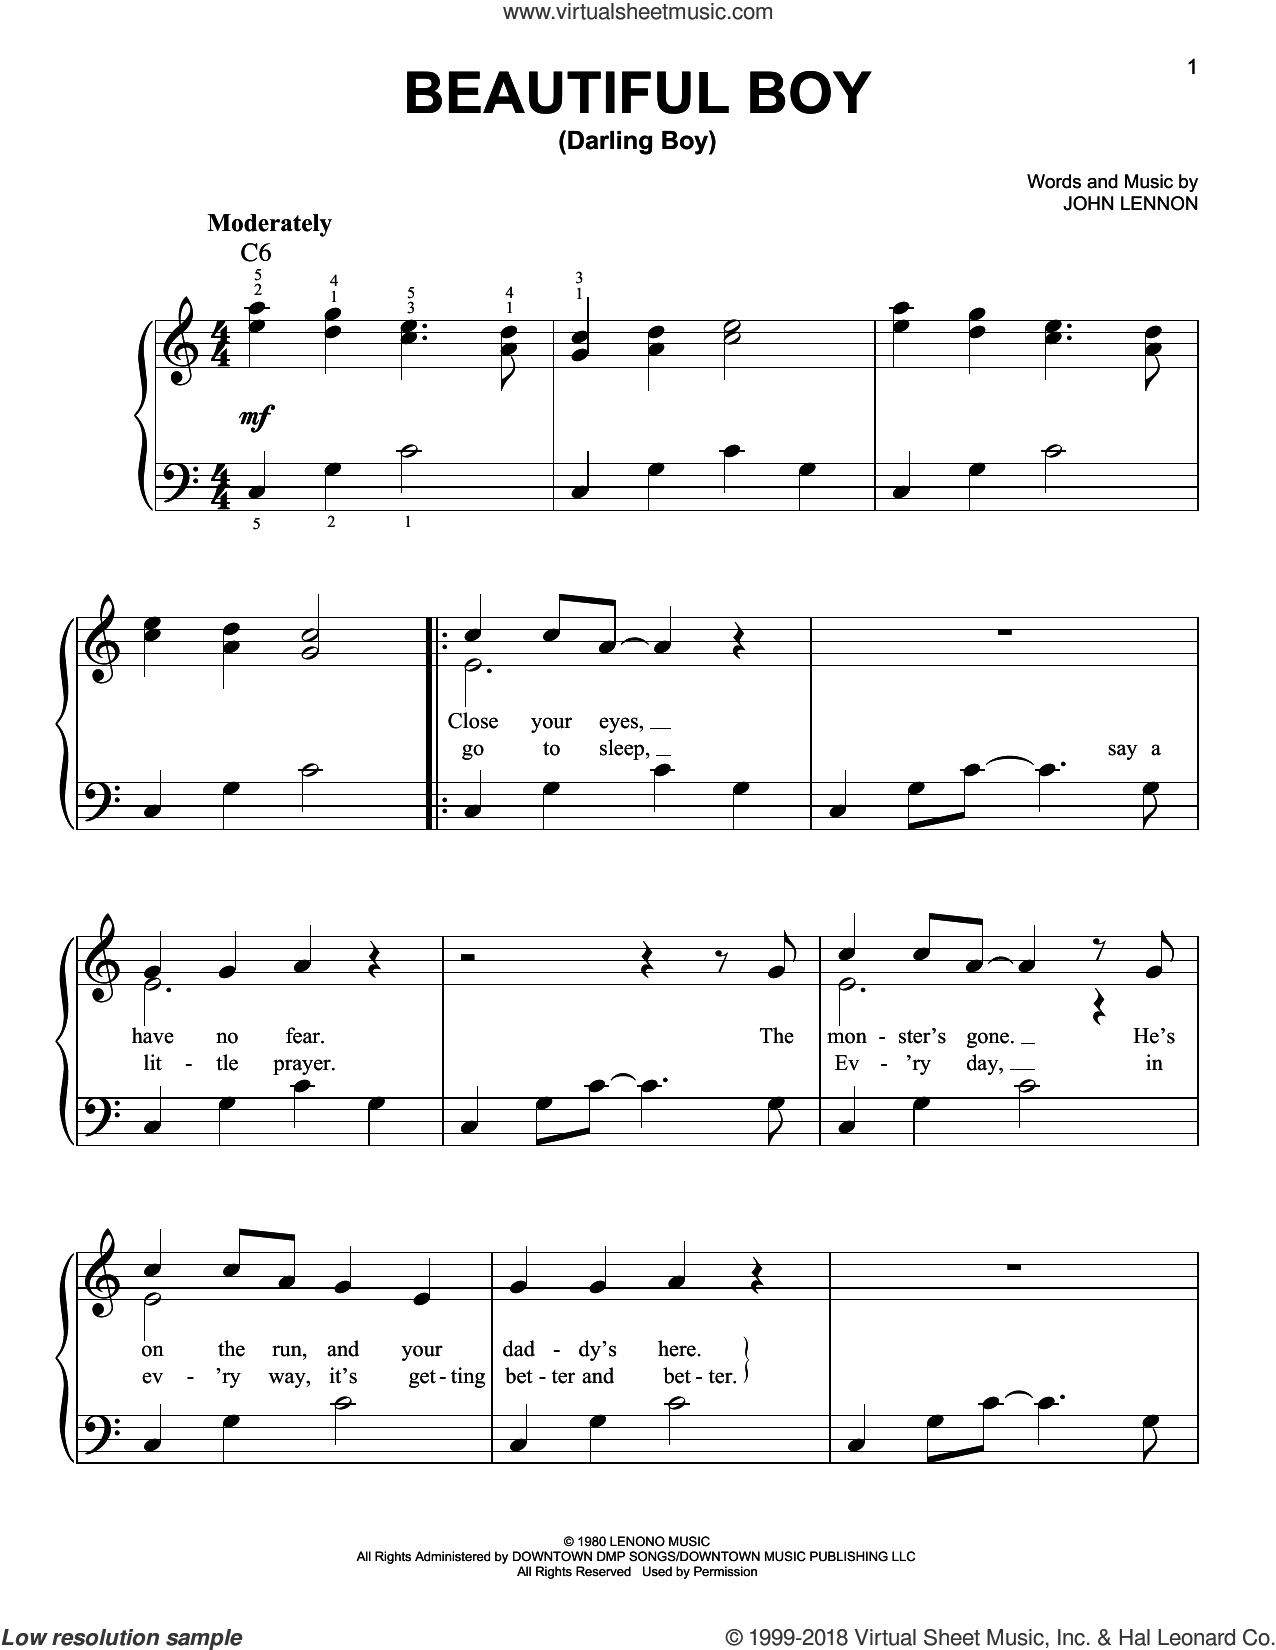 Beautiful Boy (Darling Boy) sheet music for piano solo by John Lennon. Score Image Preview.